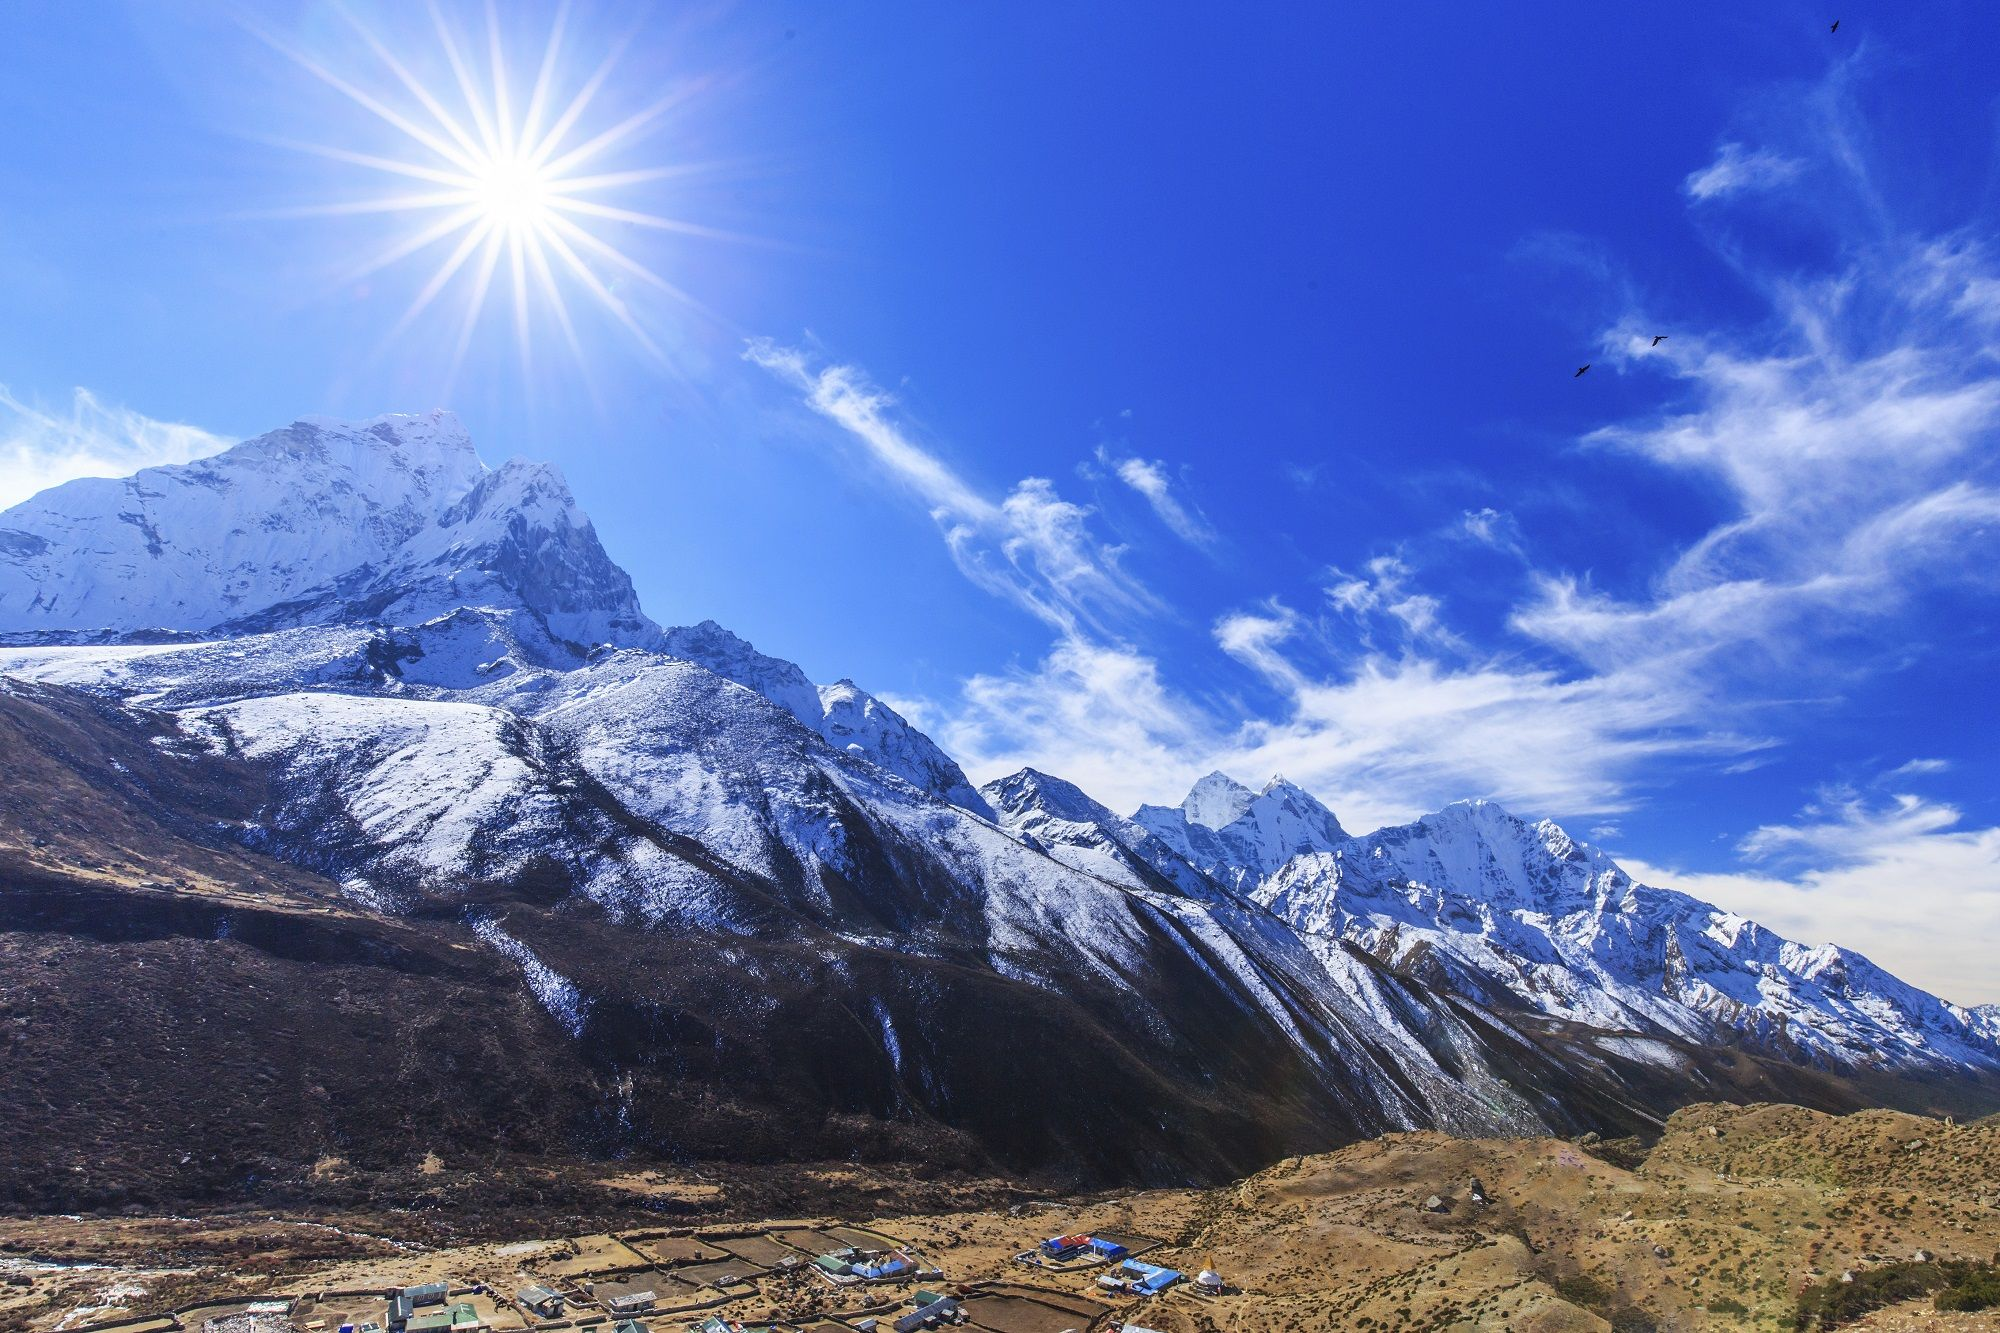 Weather pictures of the month: November 2014. MT. AMA DABLAM, NEPAL Mountain scenery in Himalaya with snow covered mountains, glacier valley and stone buildings.